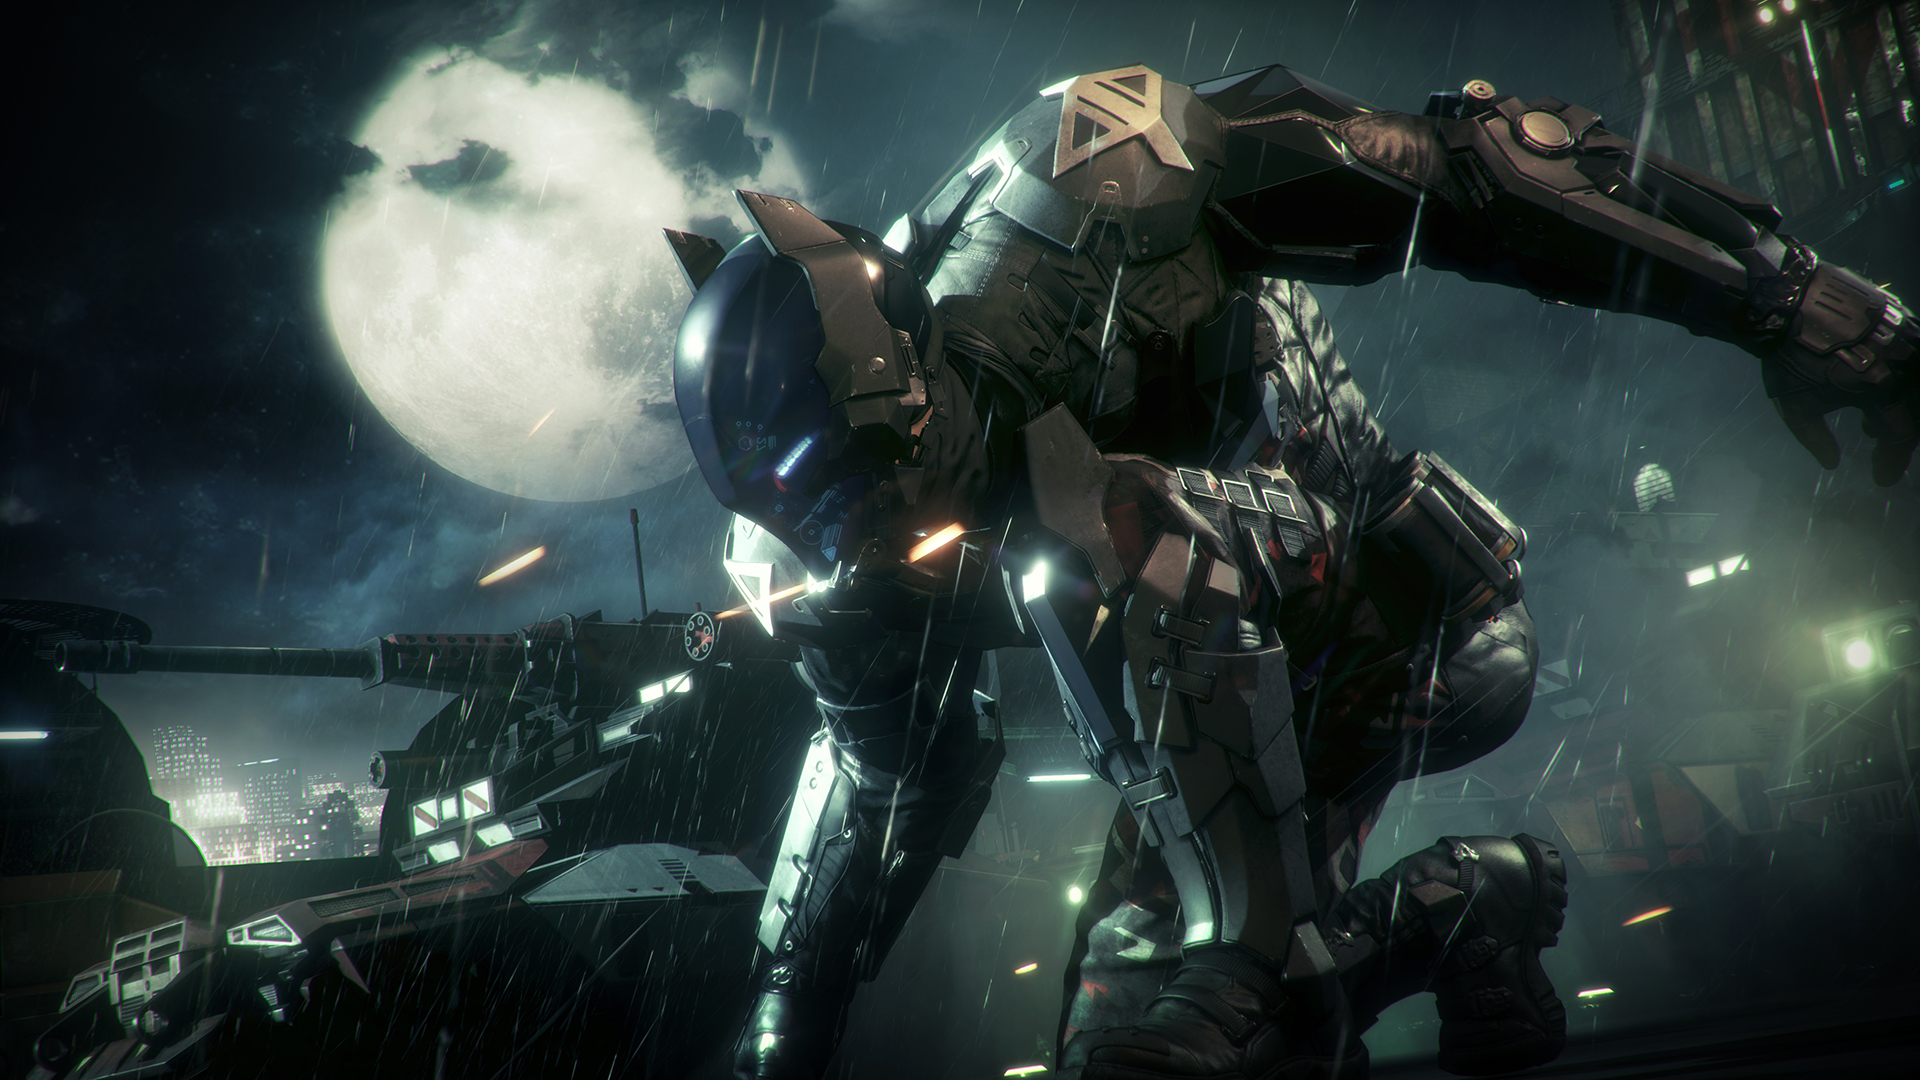 Batman: Arkham Knight screenshot 1186